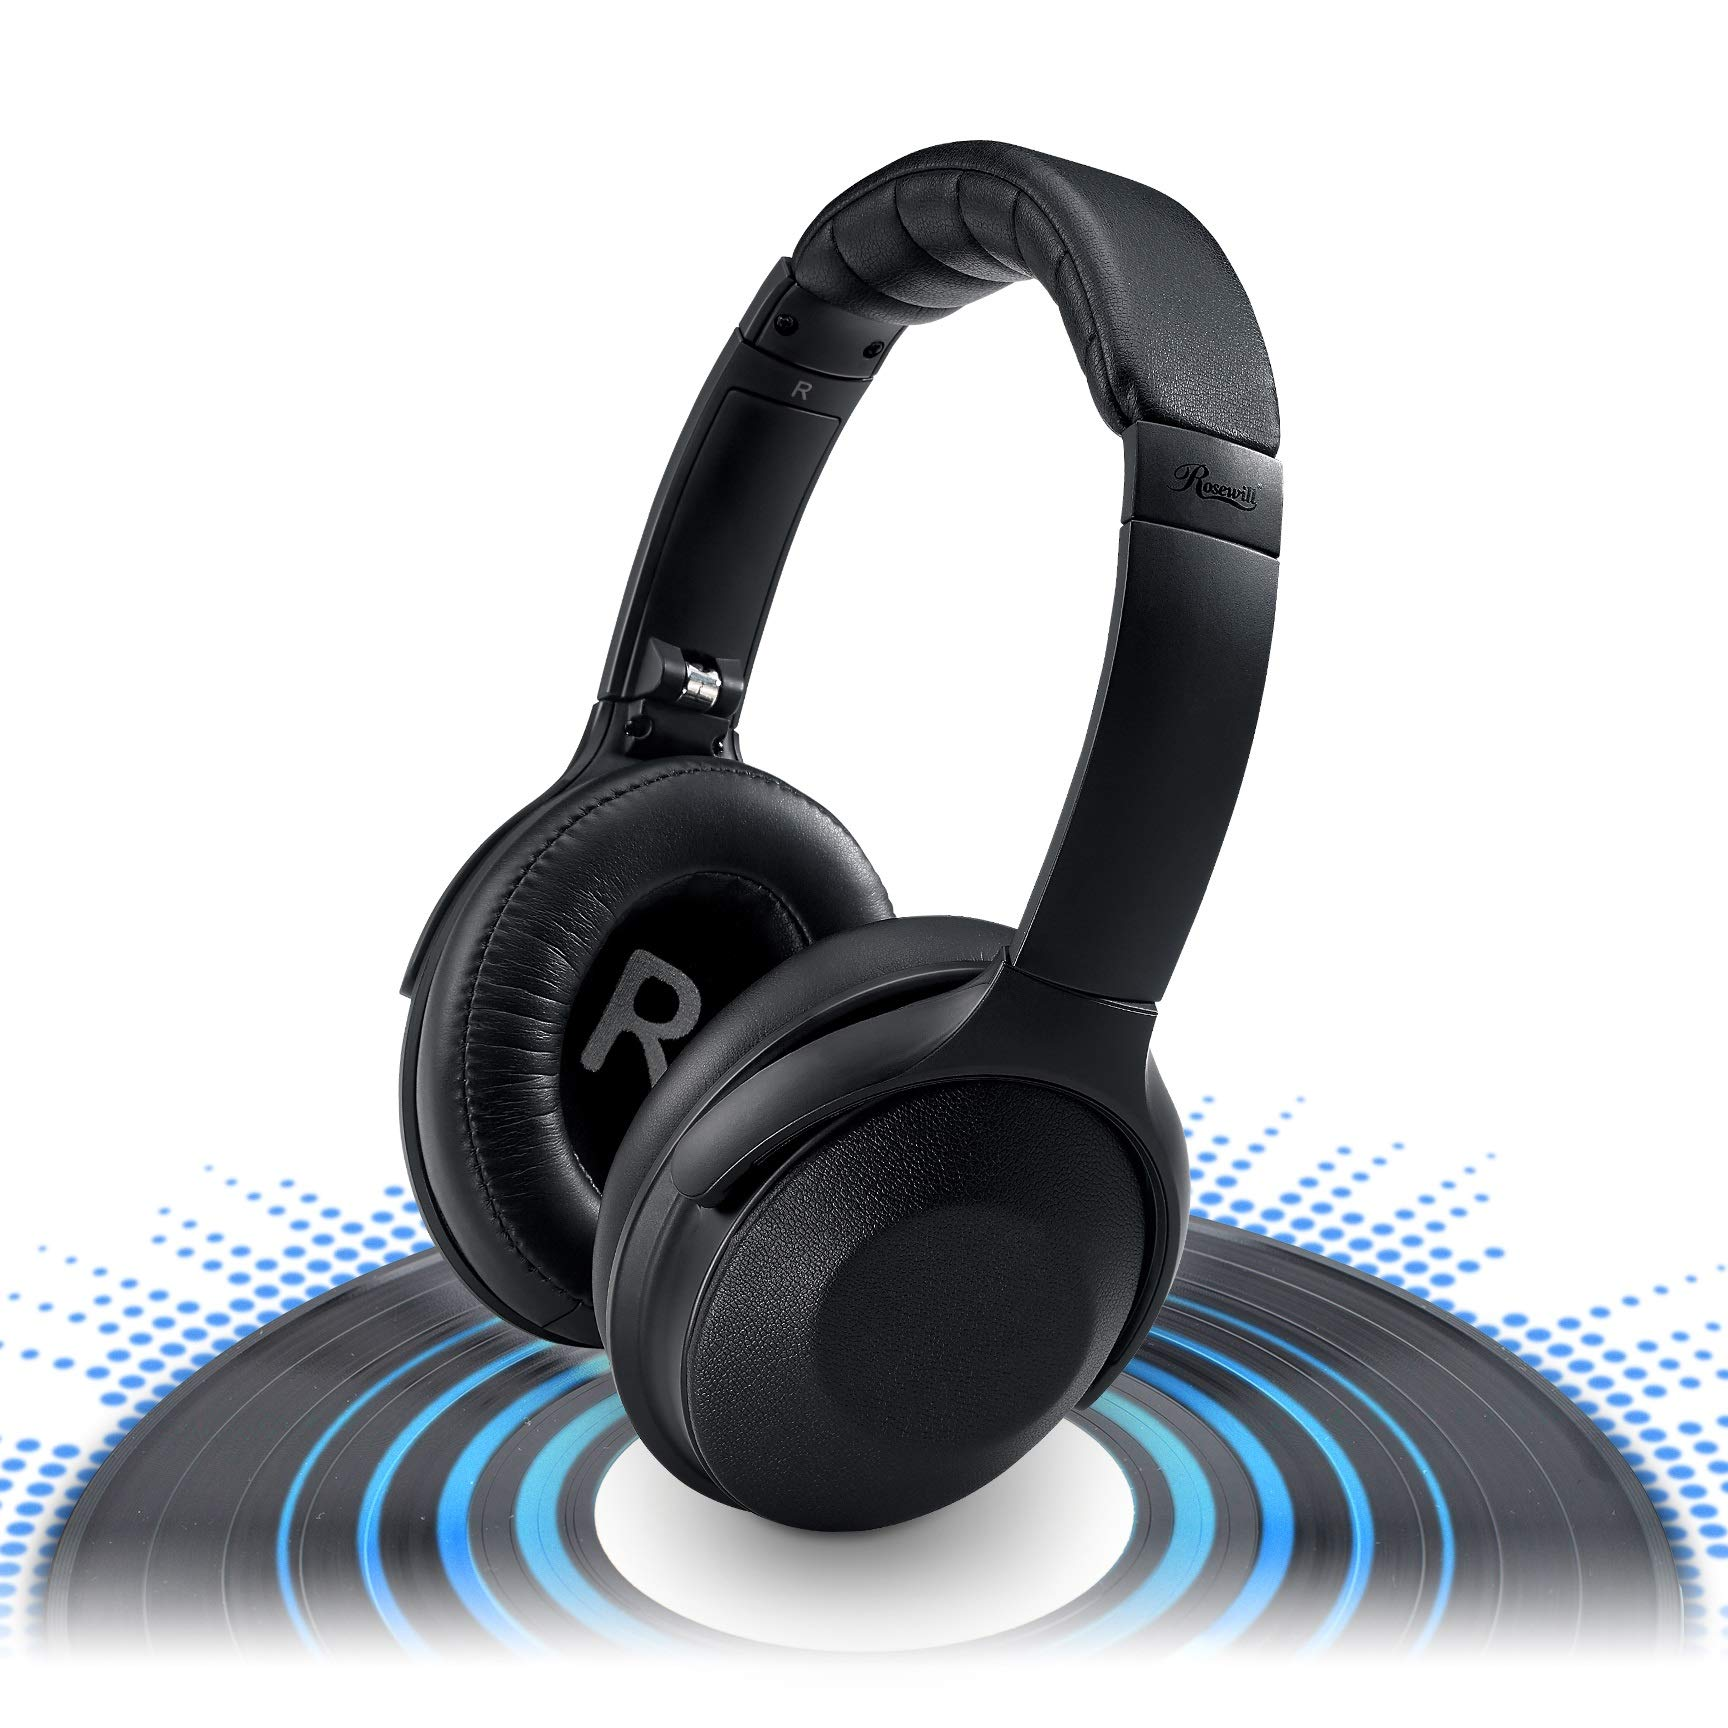 Auriculares Rosewill Cancelacion De Ruido Activa Inalambrico Bluetooth Anc Over-ear Inalambrico Headset Ideal Para Viaje